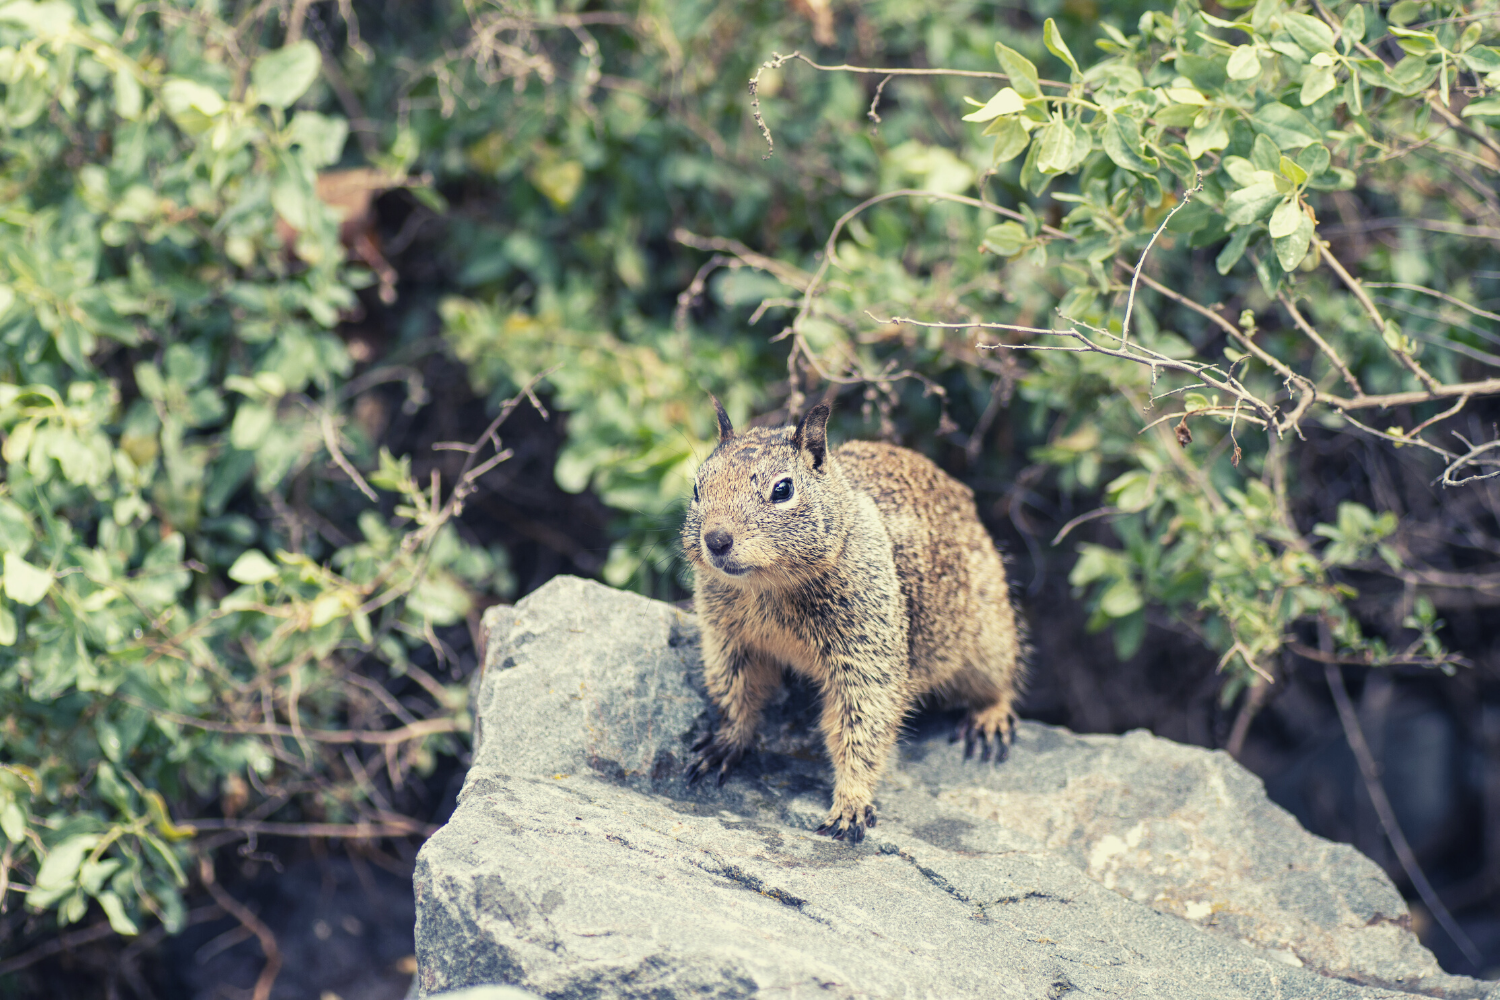 A squirrel on a rock on a sunny day